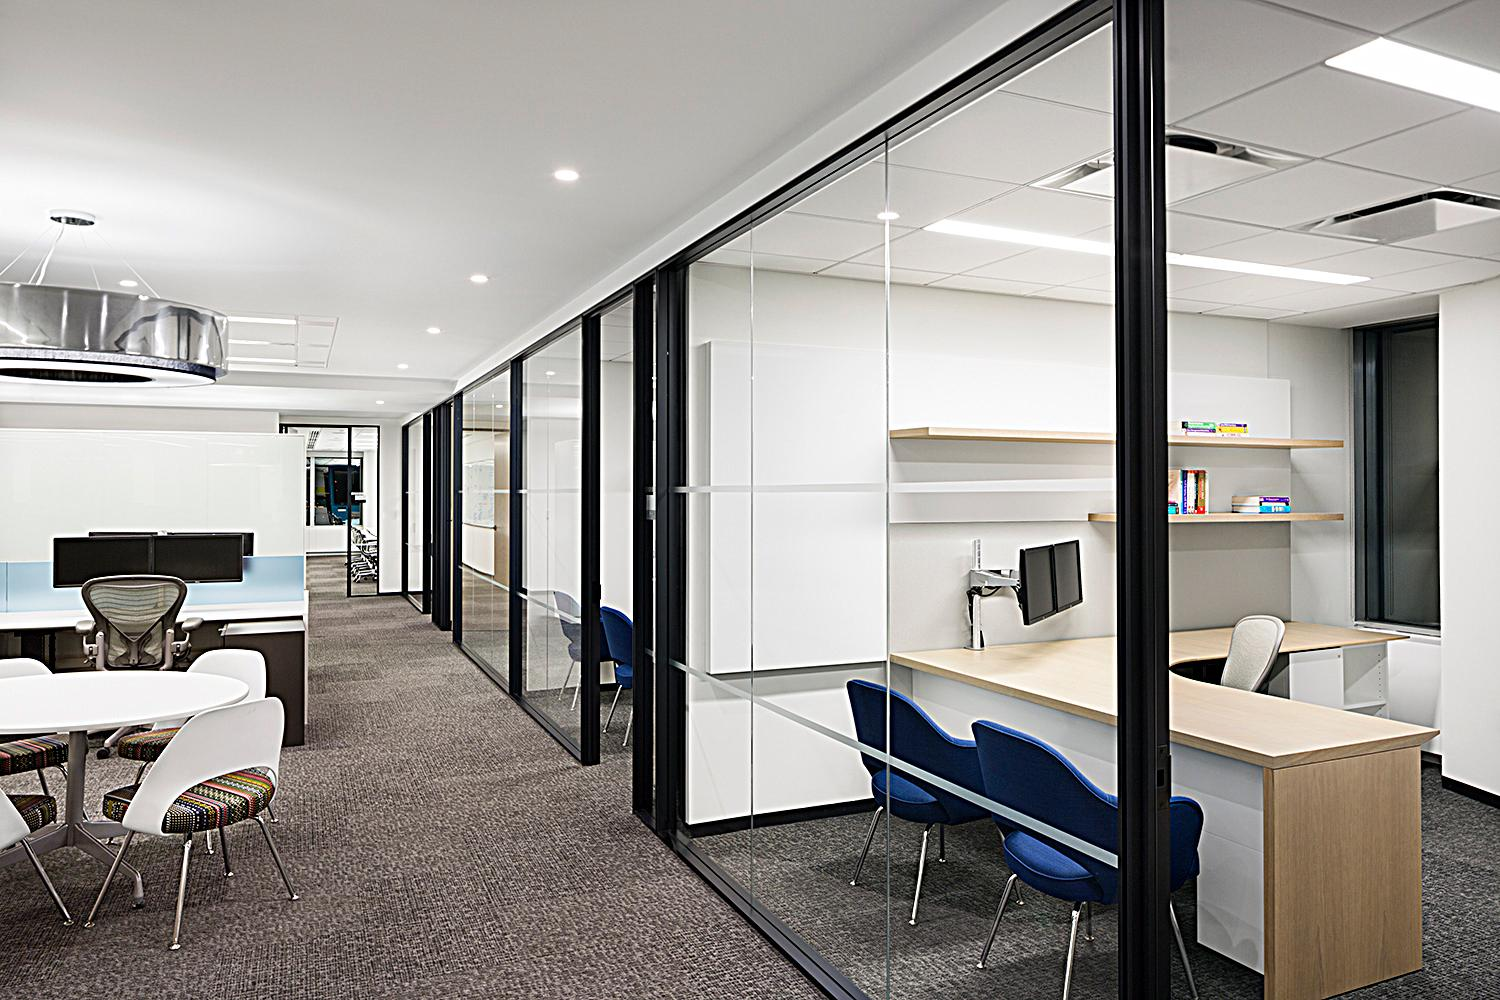 Our client's unique vision and exacting specifications resulted in fully customized private offices and open plan benching.